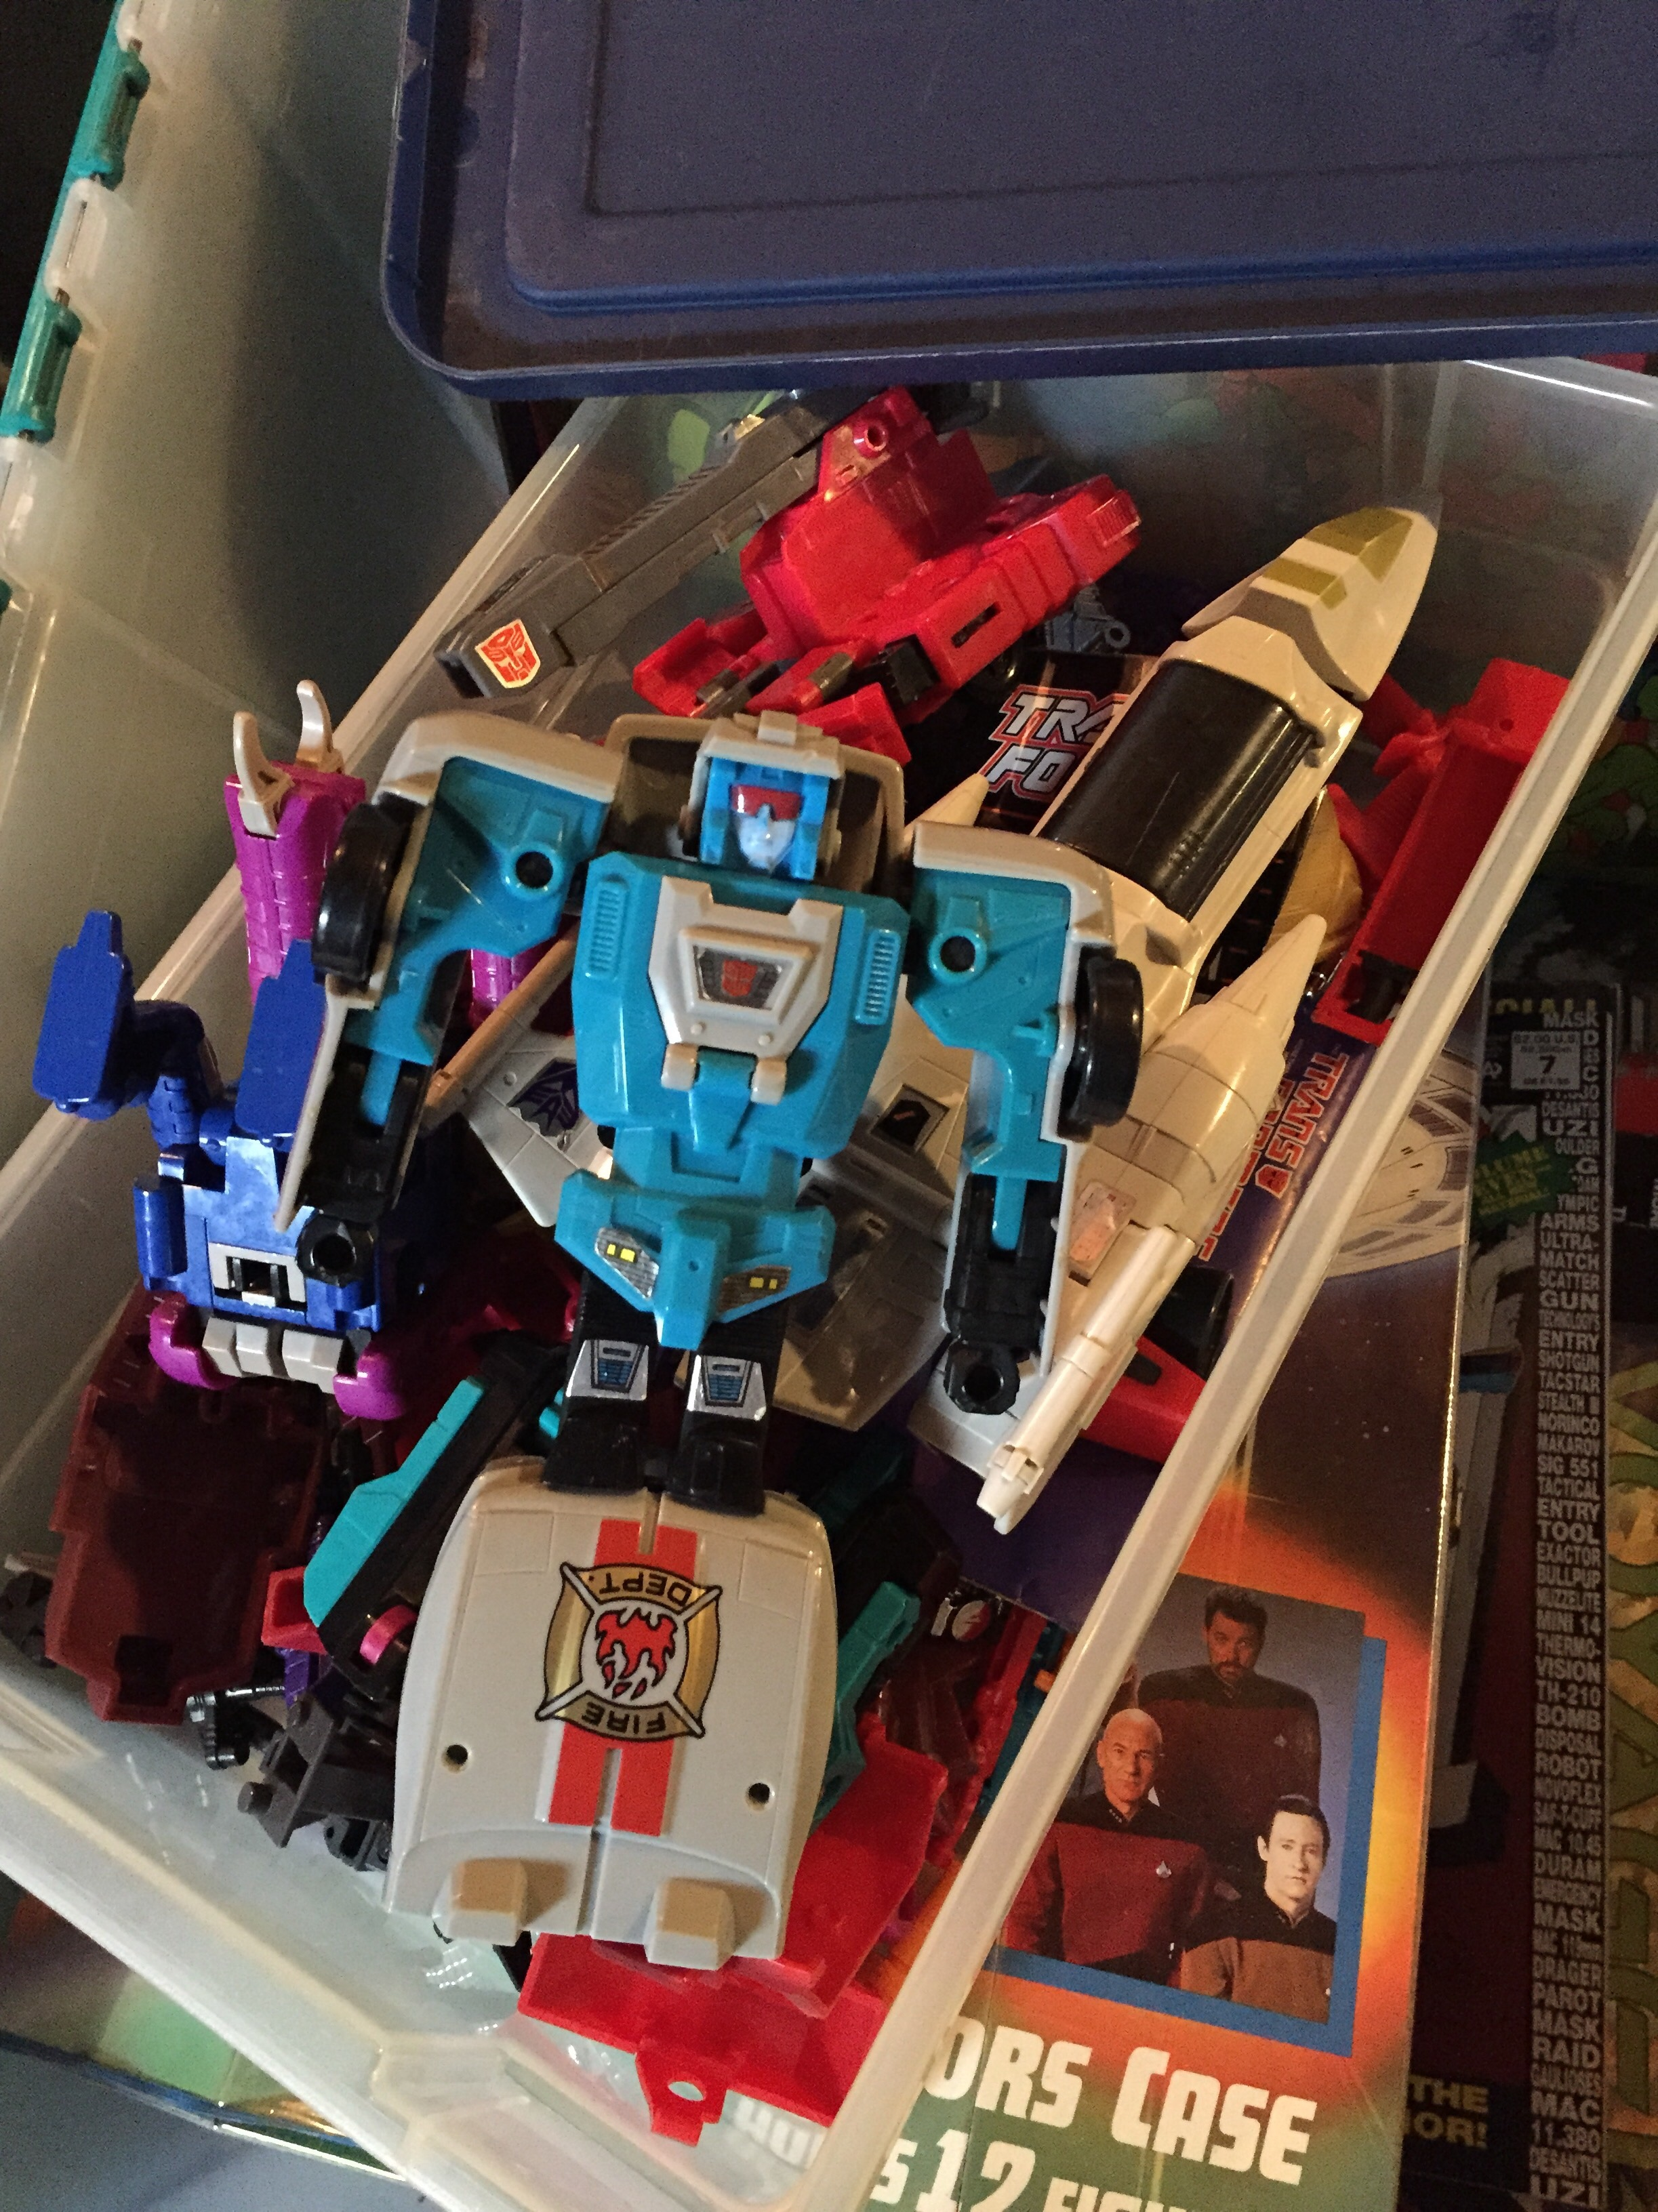 And of course Transformers, something else old that's new again.